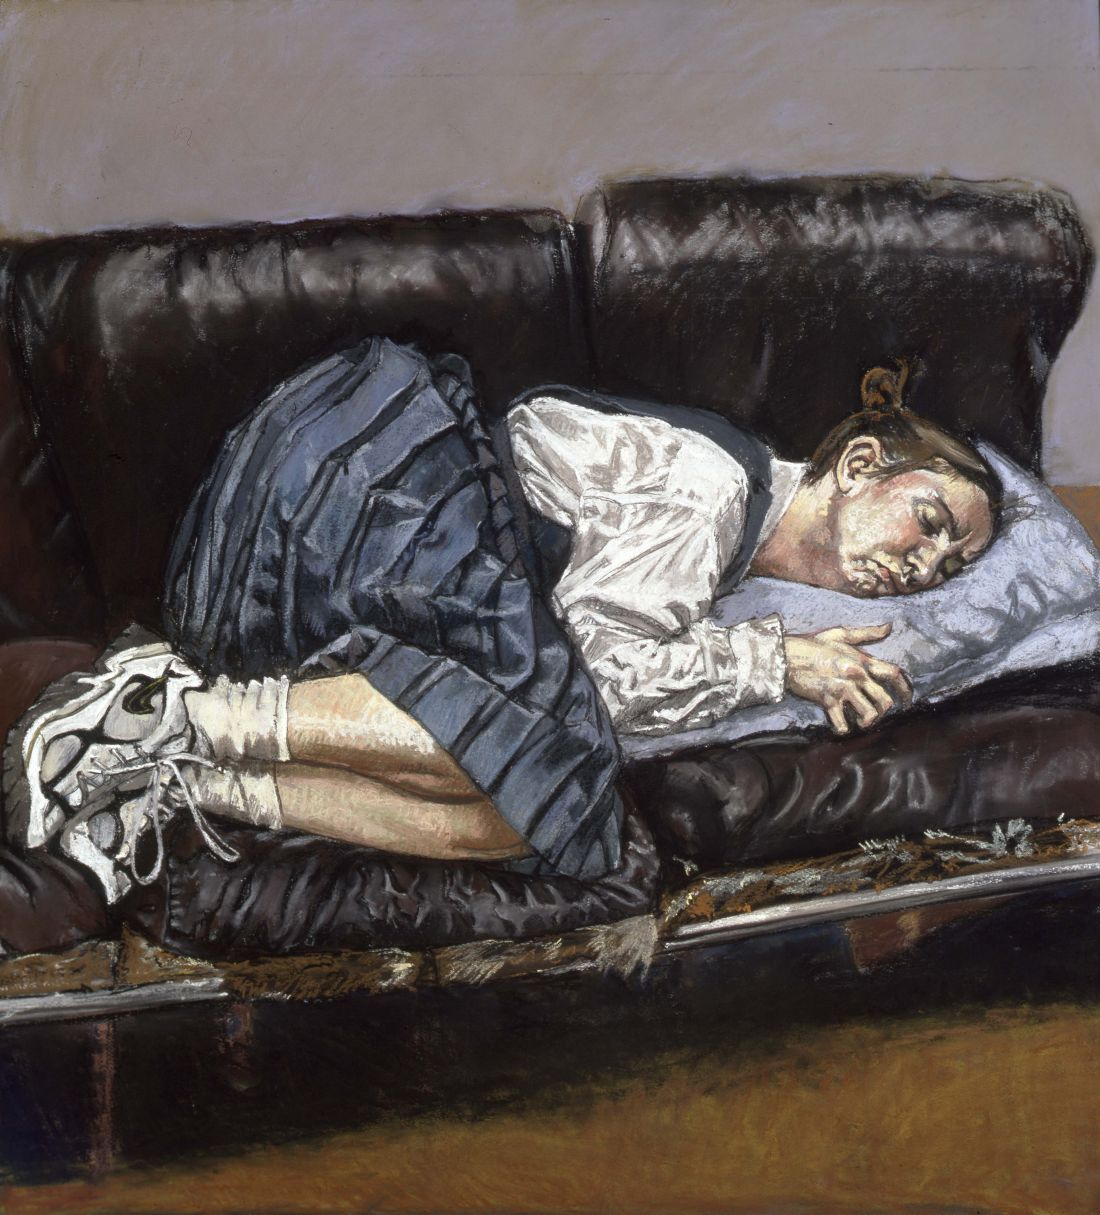 Obedience and Defiance: Fifty years of thought-provoking pastel artworks by Paula Rego